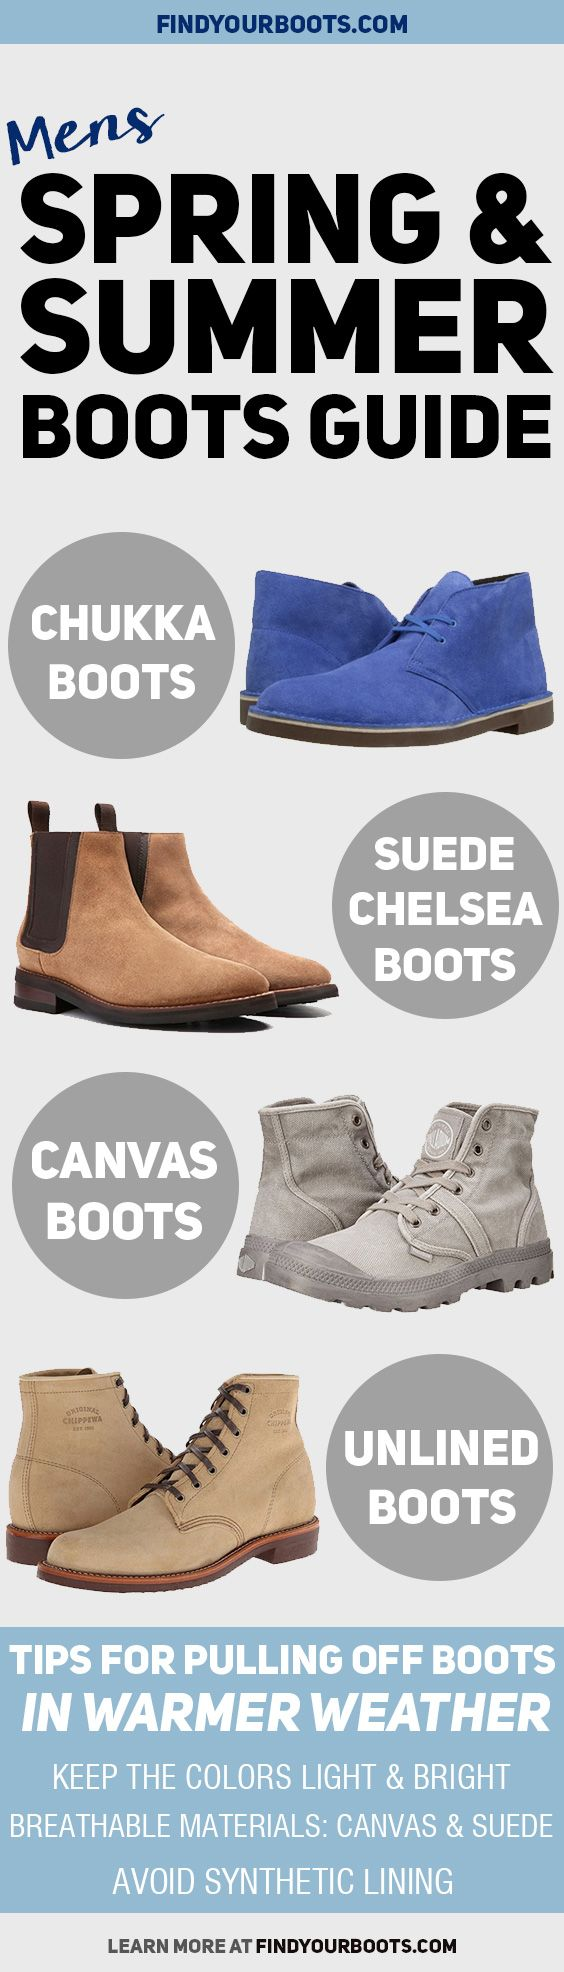 The best spring and summer boots for men. Suede boots are versatile and look great with mens spring fashion. Sport suede chukka boots for a classic summer style. Here is a quick and easy guide to mens summer boots.